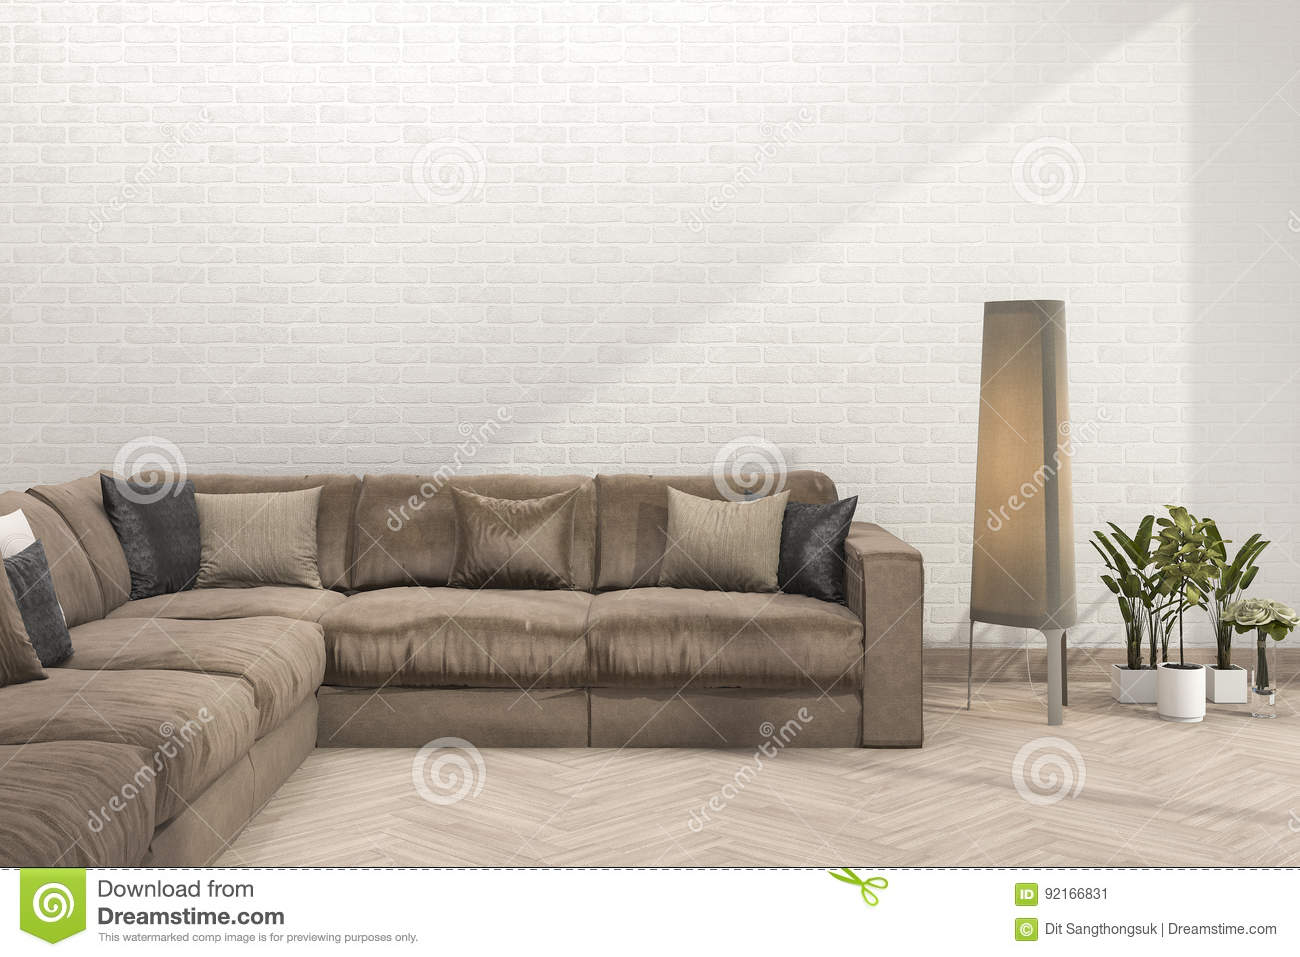 3d Rendering Retro Brown Sofa In Minimal Living Room With Brick Wall ...